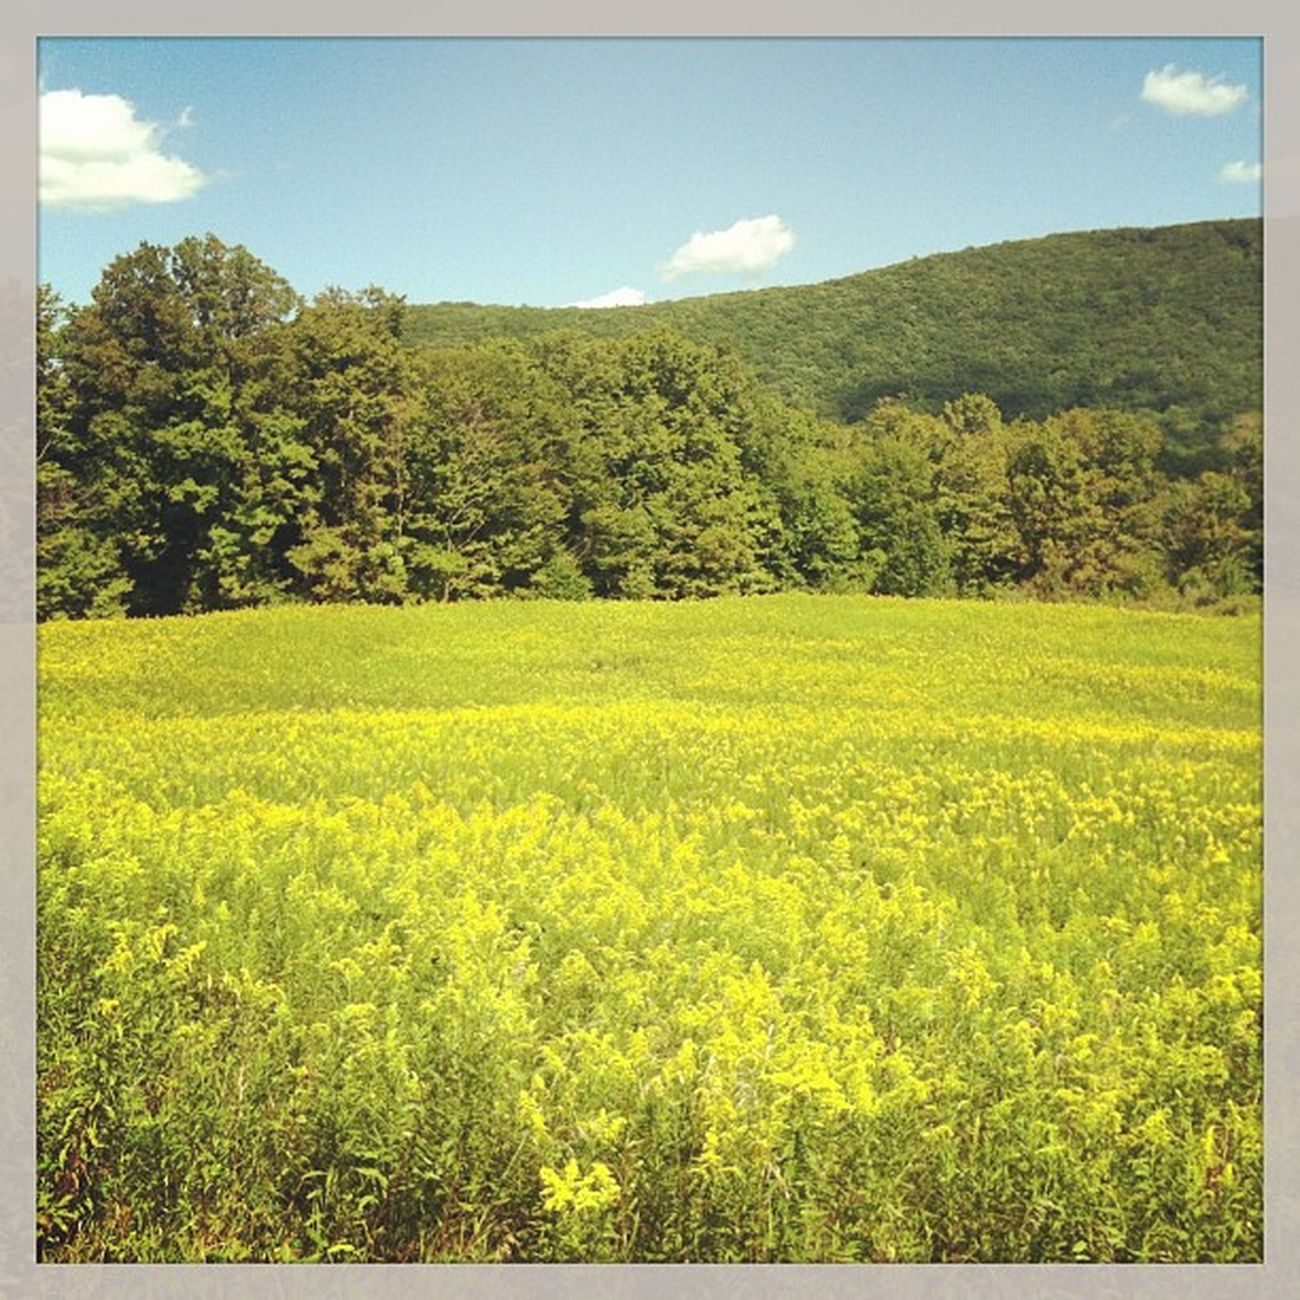 Solidago field